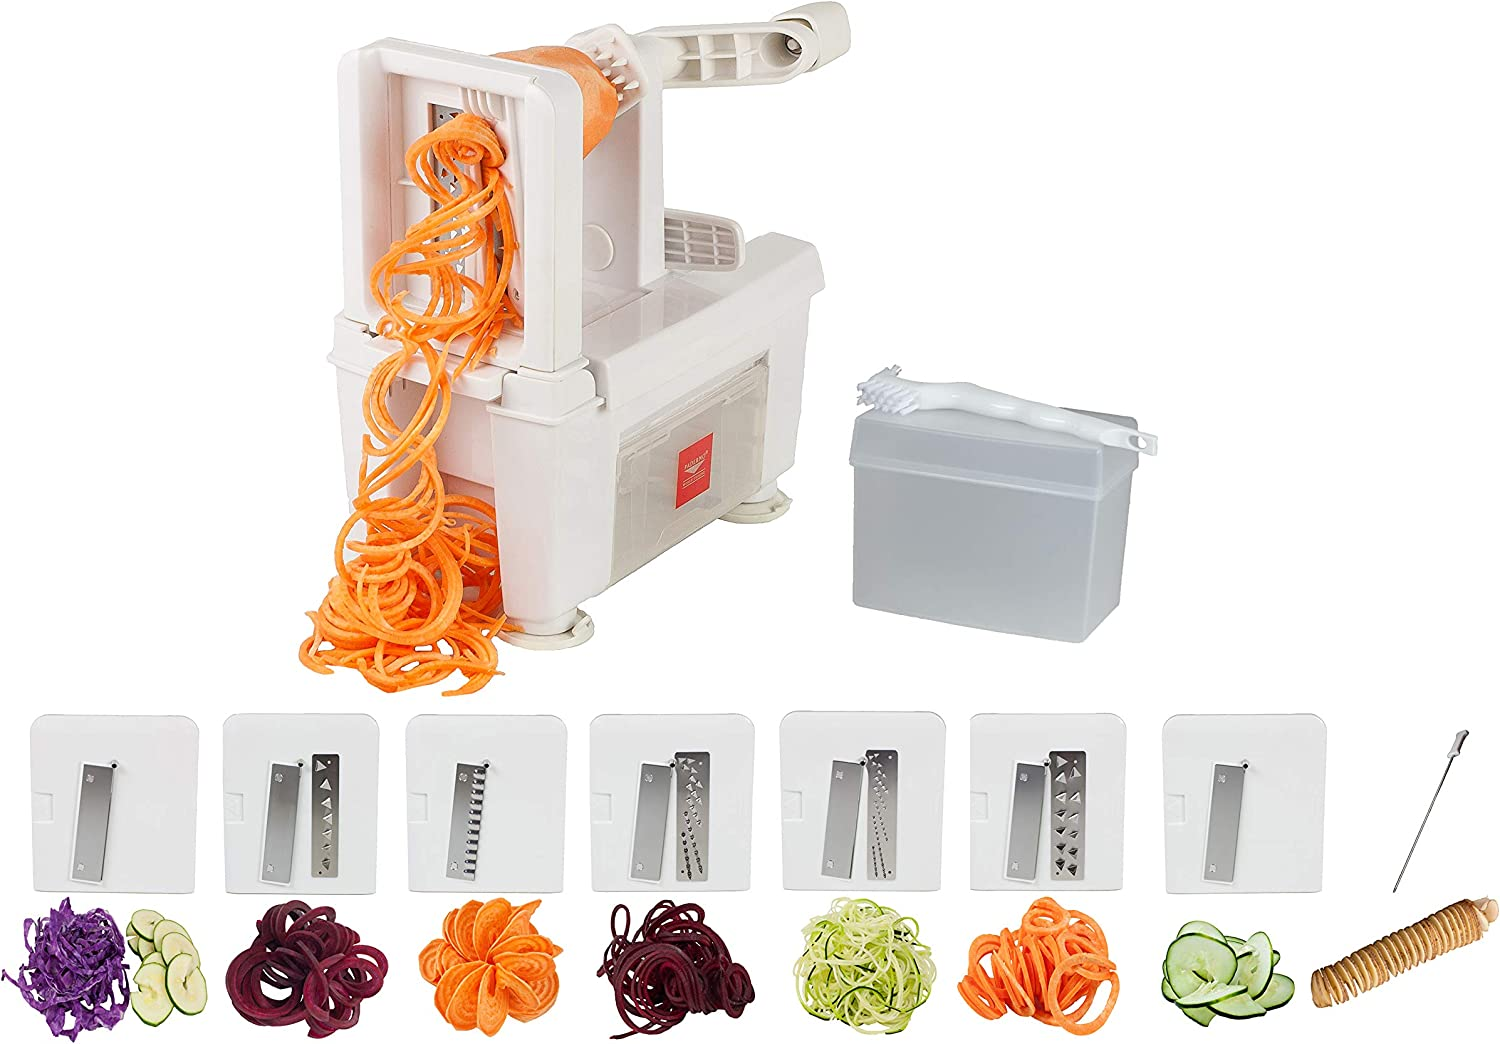 Paderno World Cuisine A4982807 8-Cut Collapsible Spiralizer, Folding 7-Blade, White